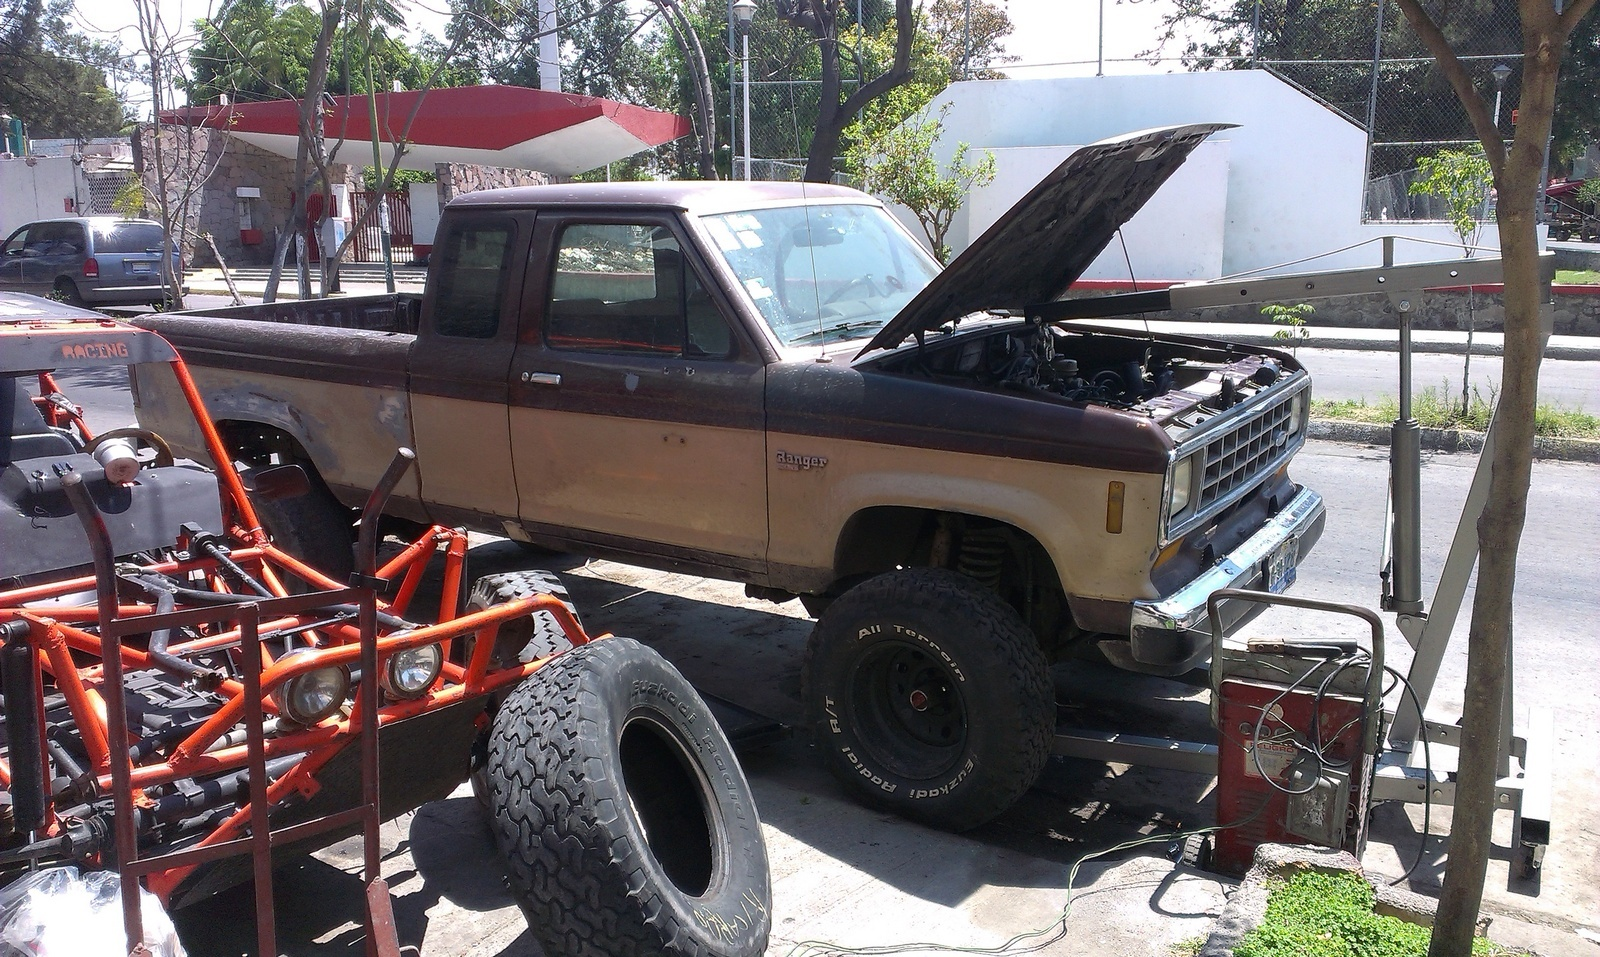 ... ranger 1986 4x4 whit original transmition works great .......... torque  is very very good and the 4x4 work very fine whit this motor/engine any ...